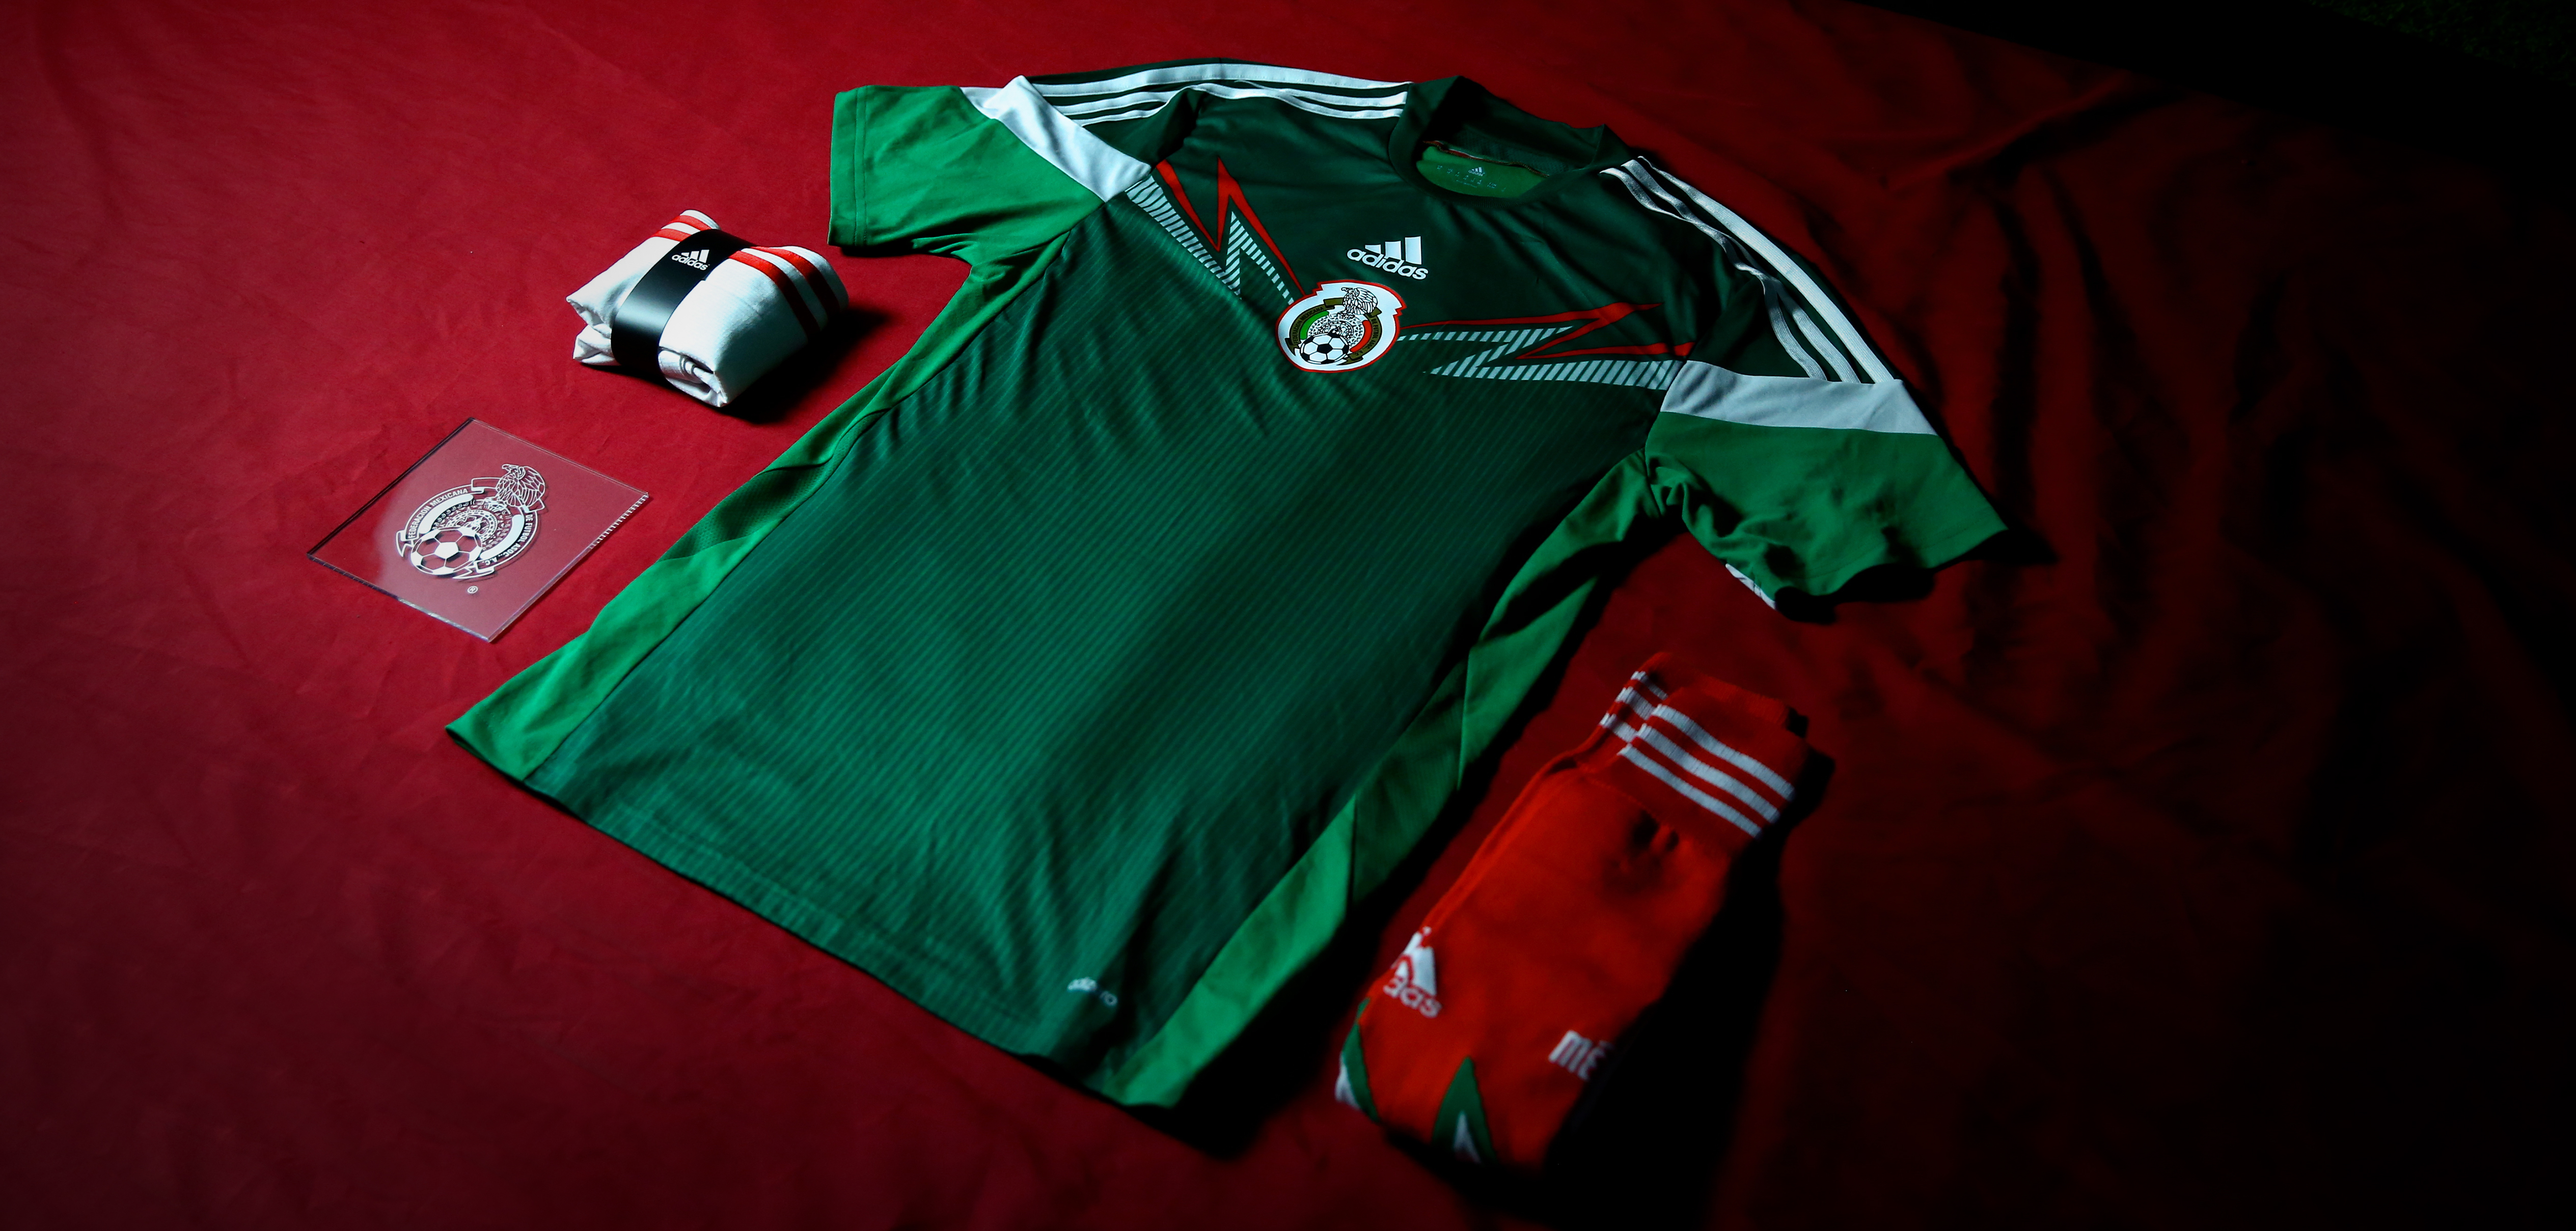 Mexico 2016 Copa America Home Kit Released - Footy Headlines  |Mexico National Team Kit